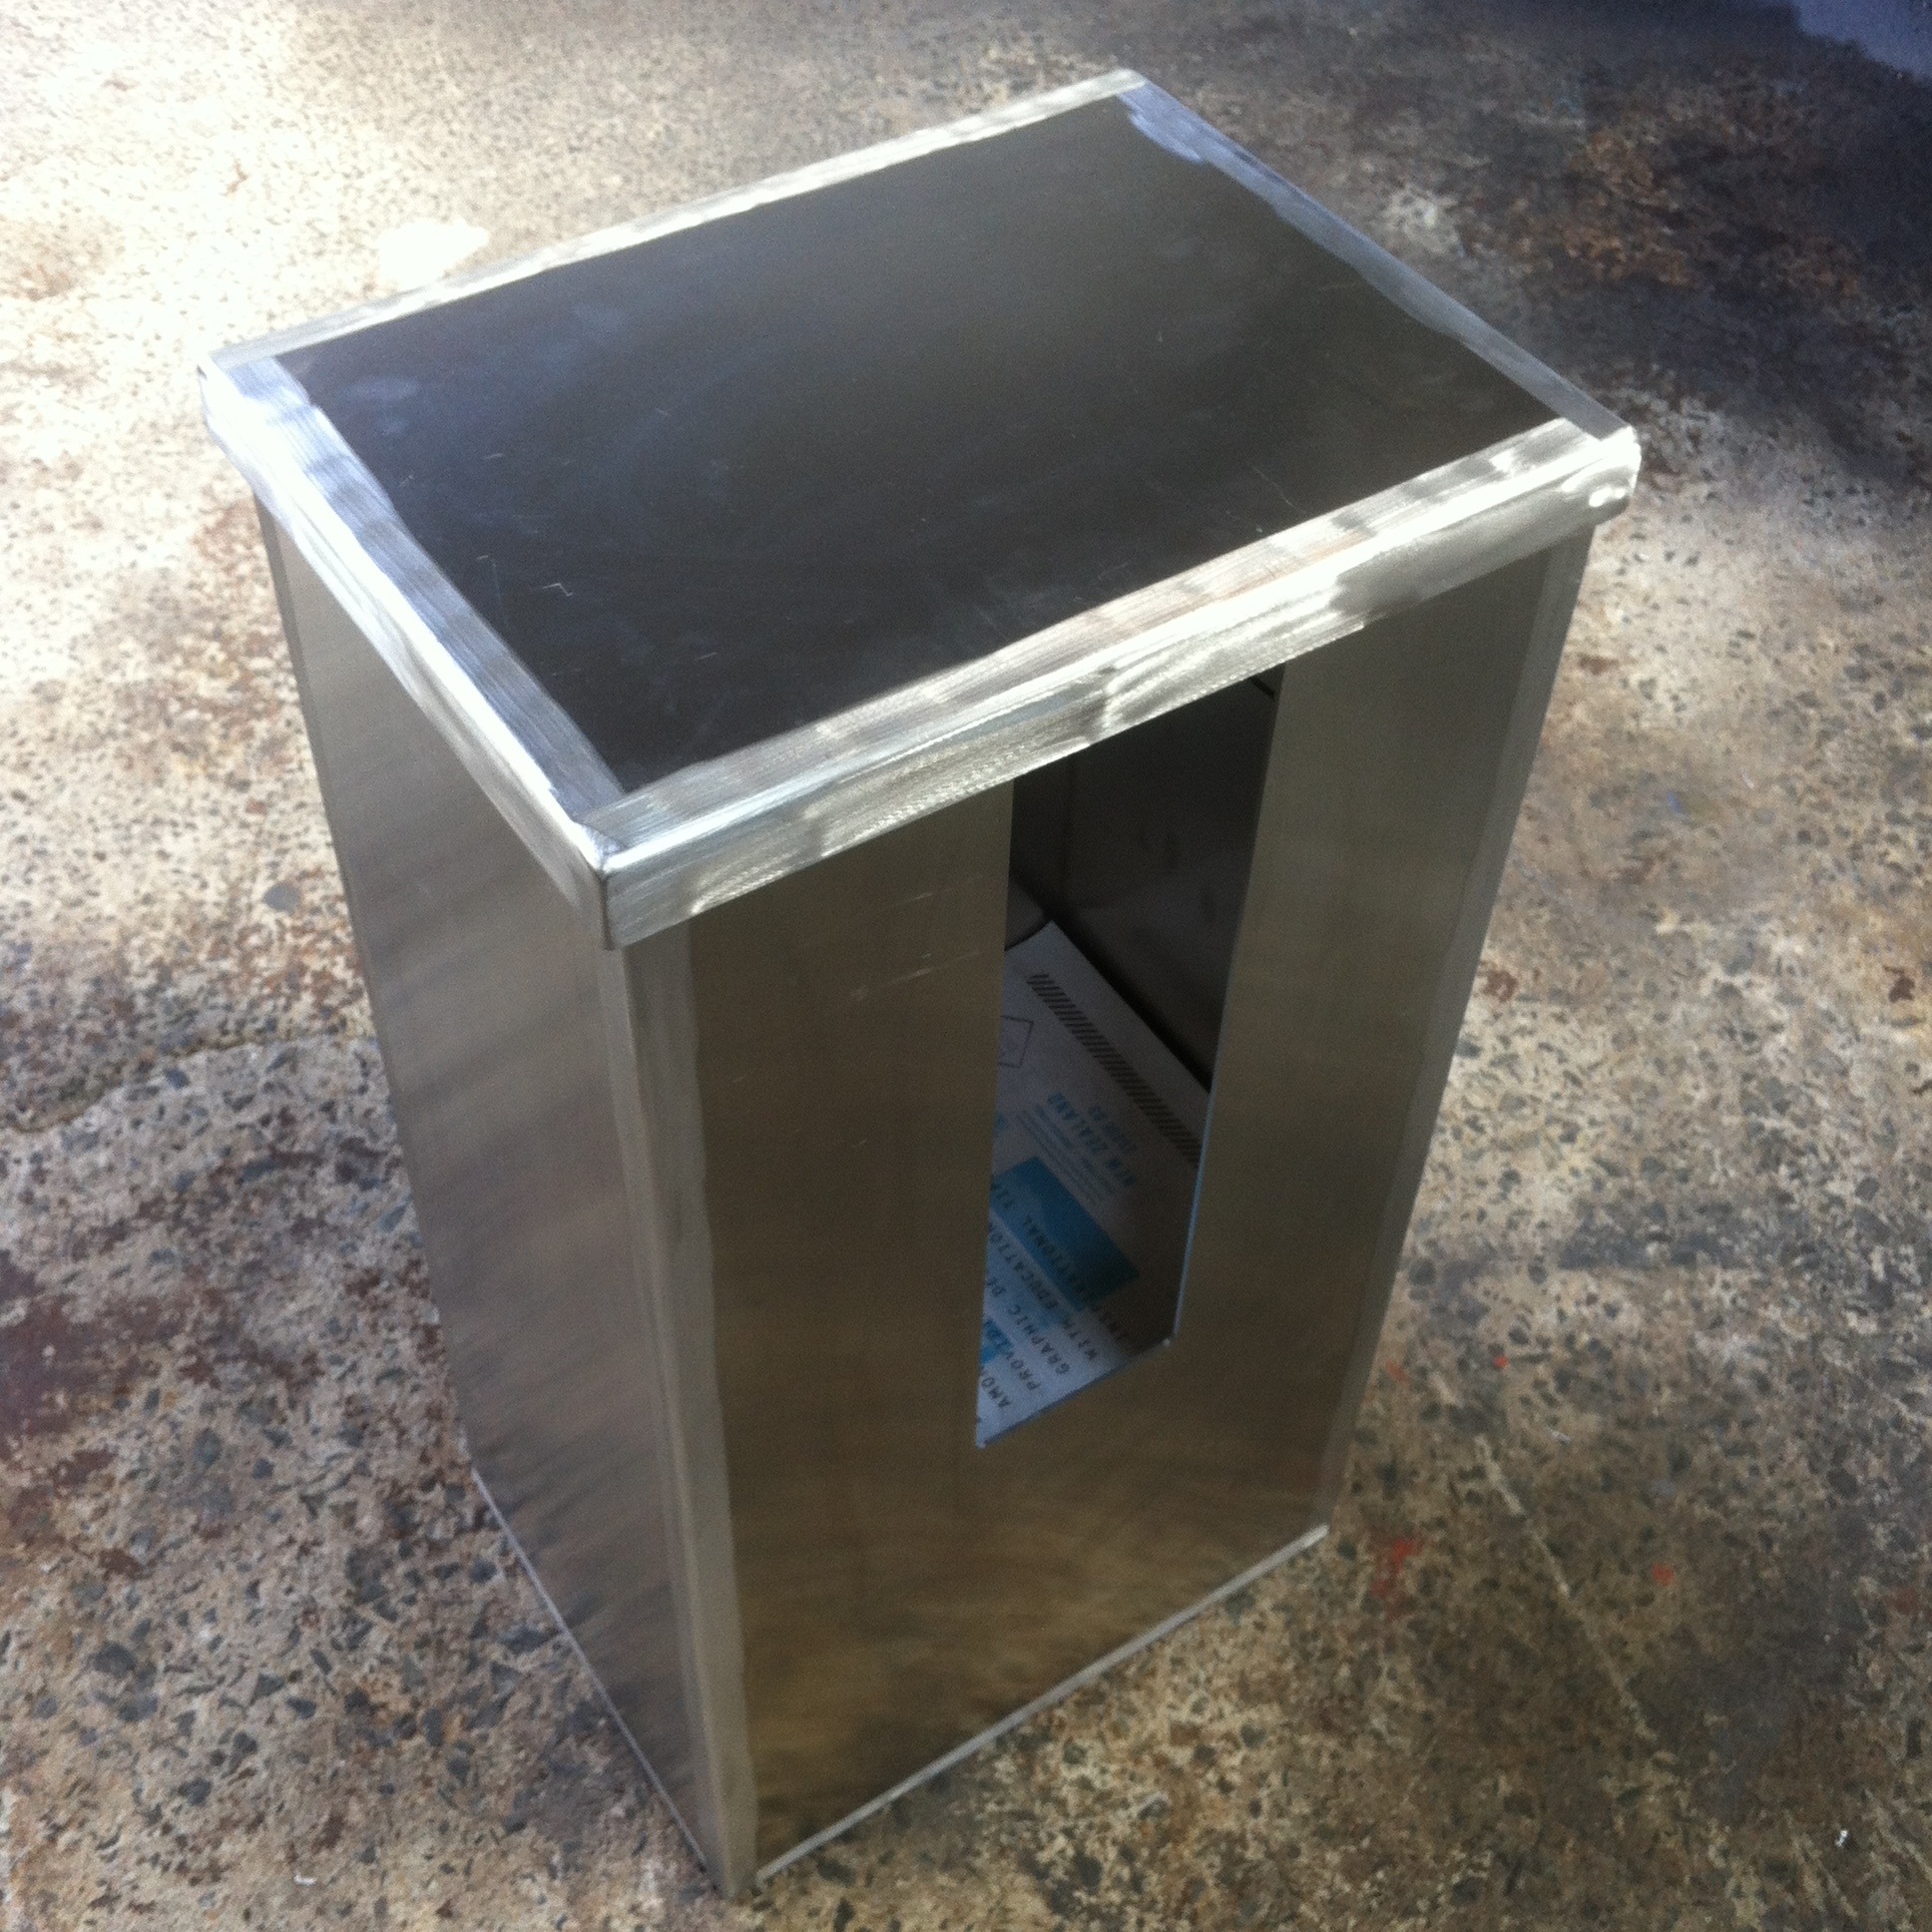 Distribution box for art publications